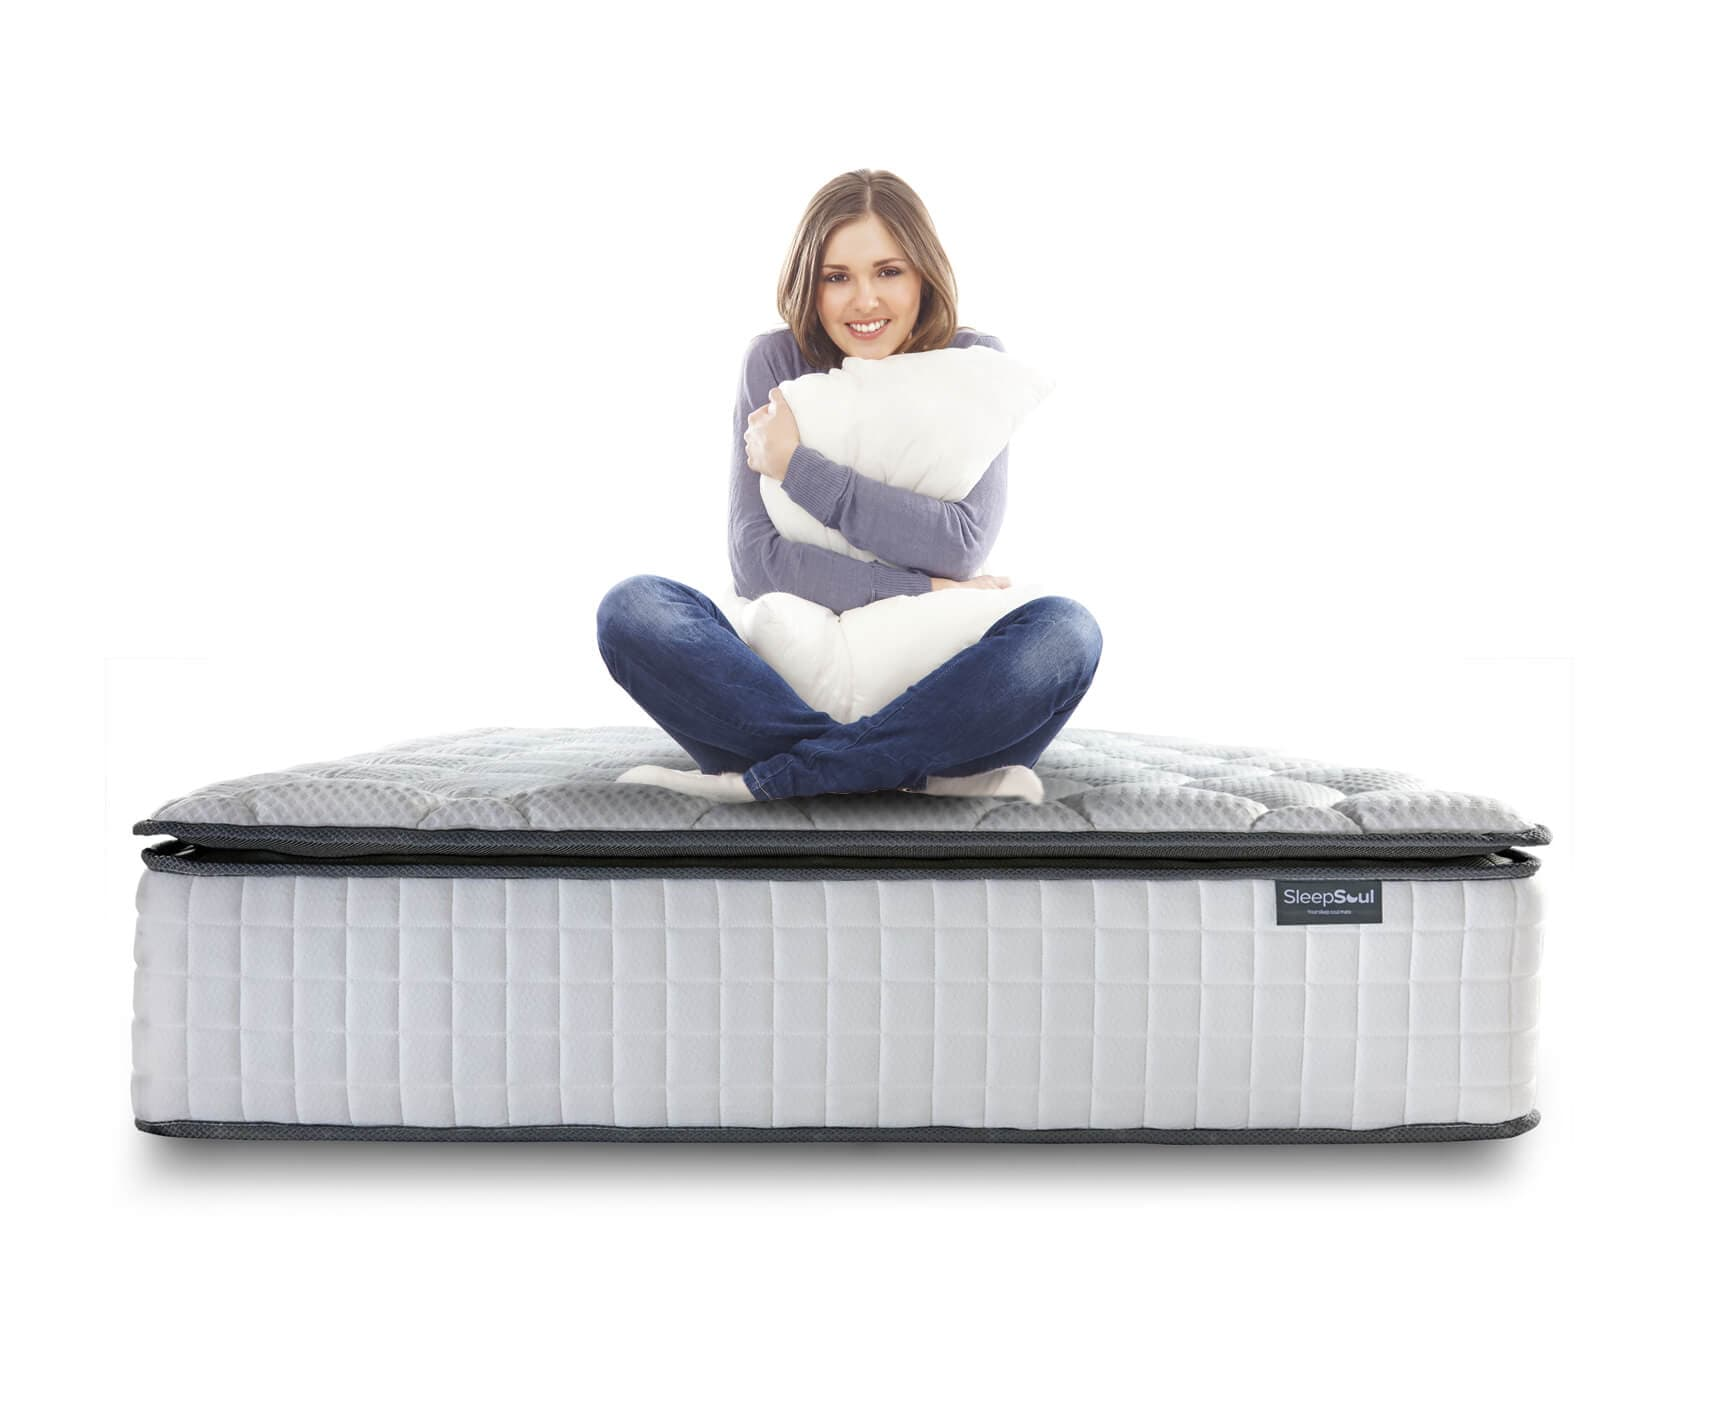 Lady sat on Sleep Soul mattress